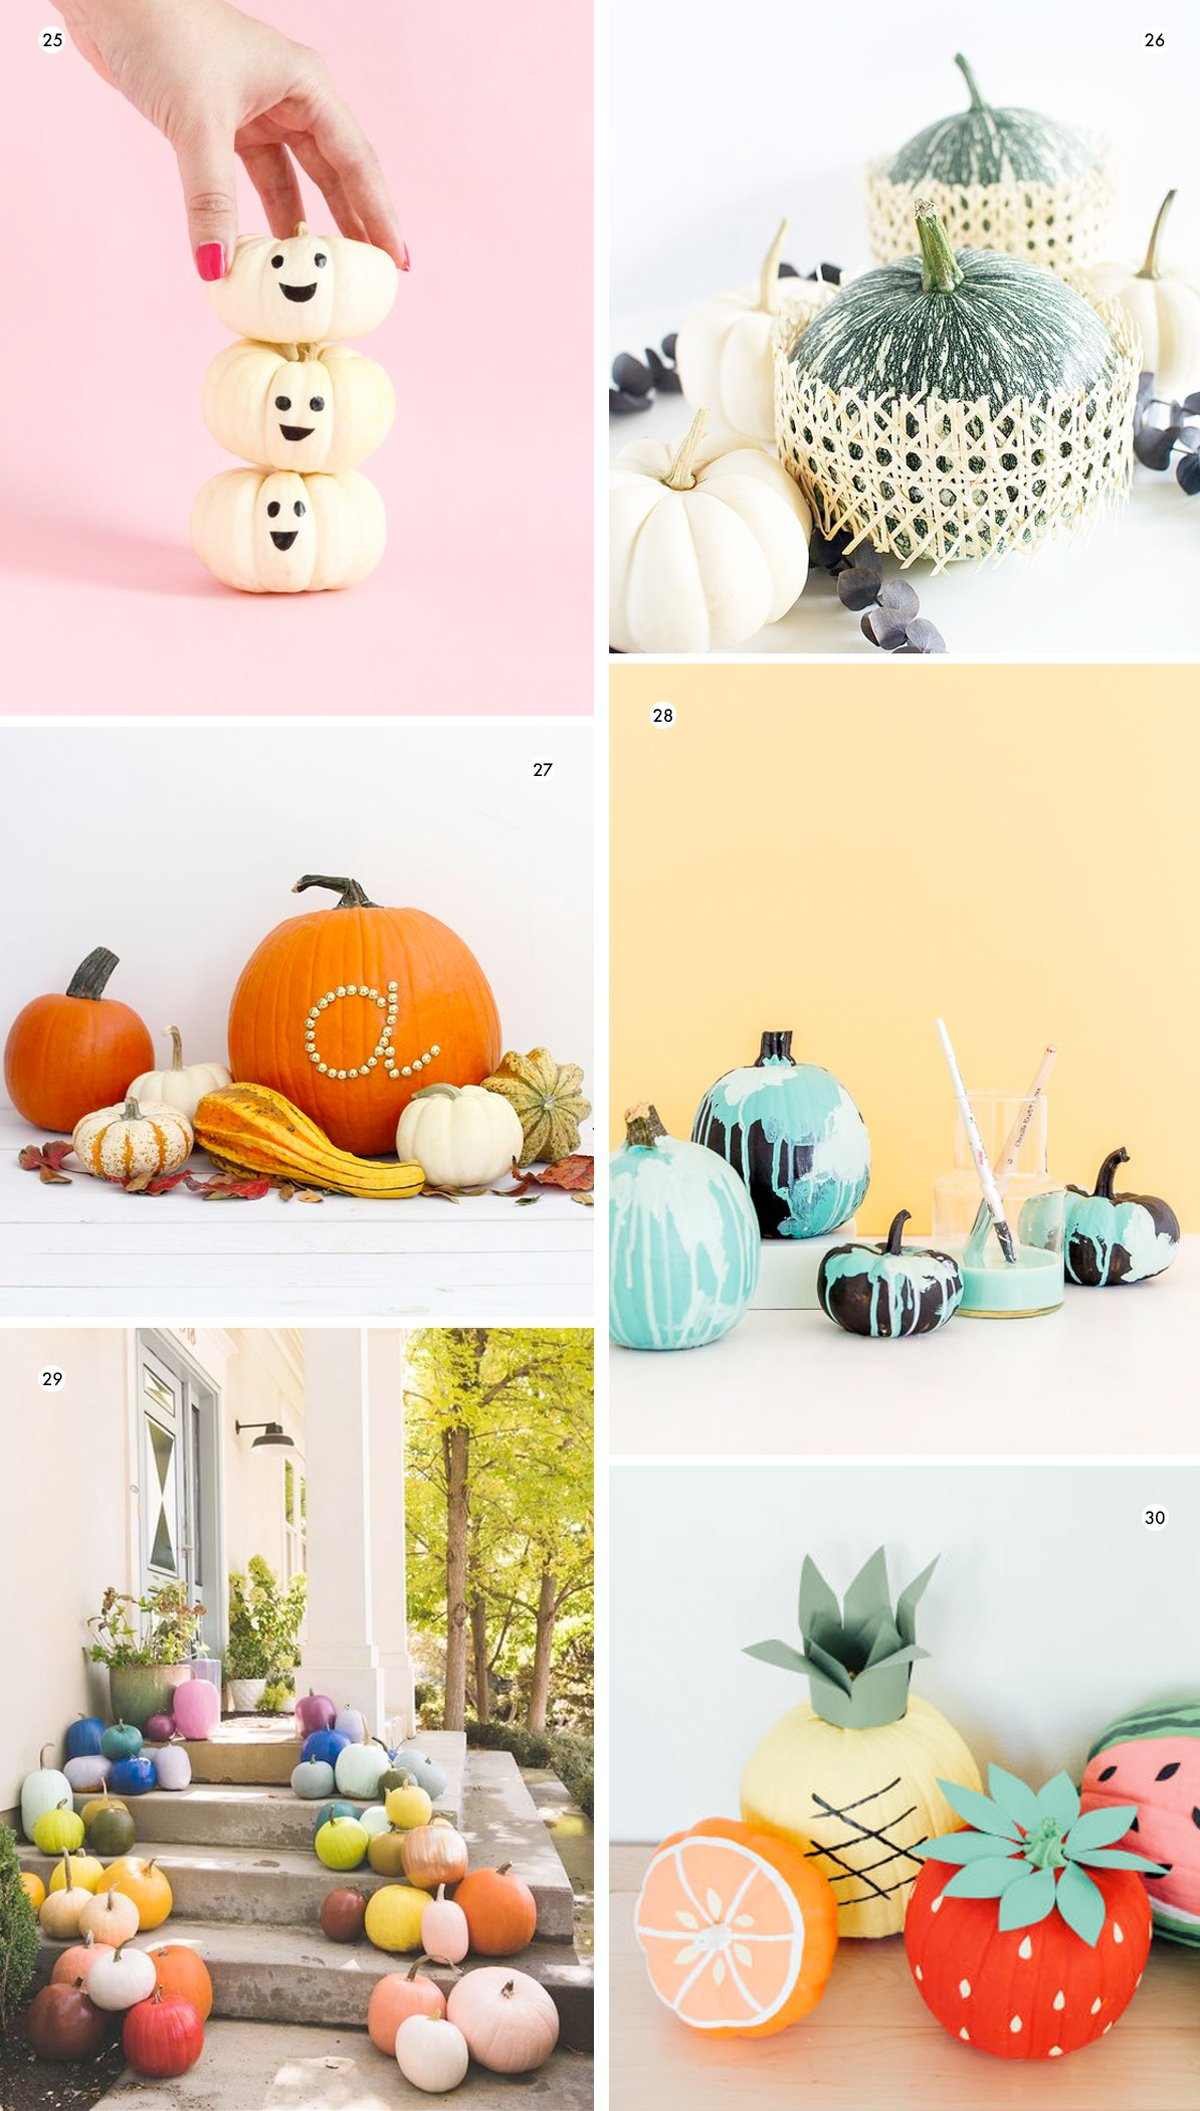 Colorful and clever DIY pumpkin decorating projects (part of a roundup of nearly 40 pumpkin ideas)